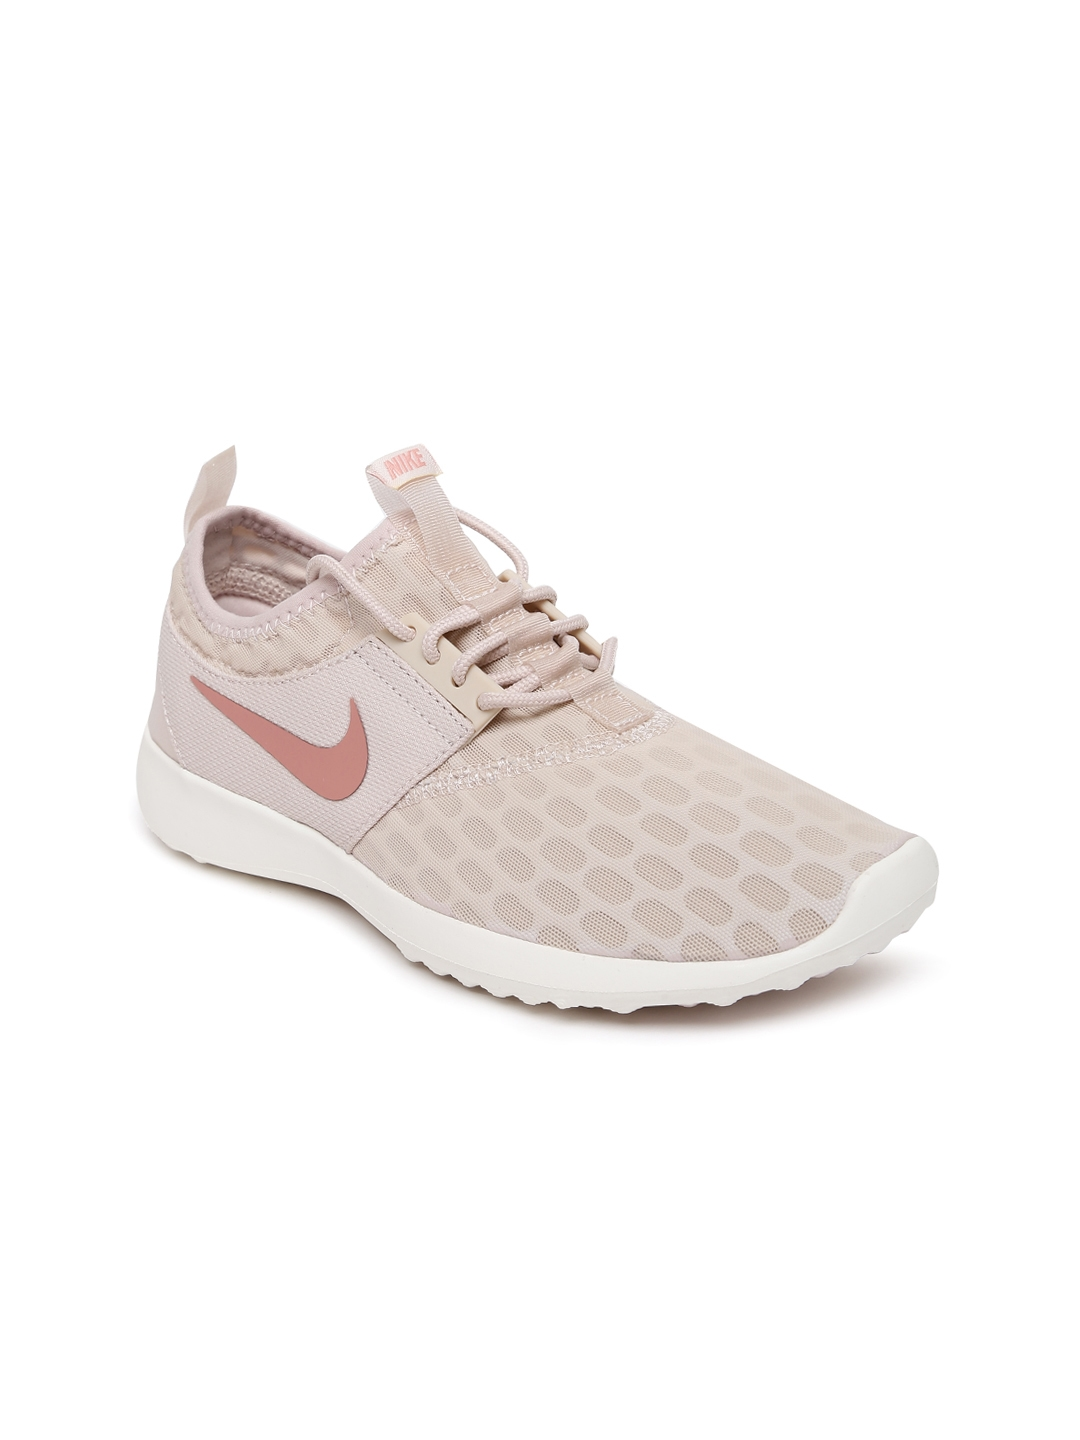 f14d95e06 Buy Nike Women Pink JUVENATE Sneakers - Casual Shoes for Women ...